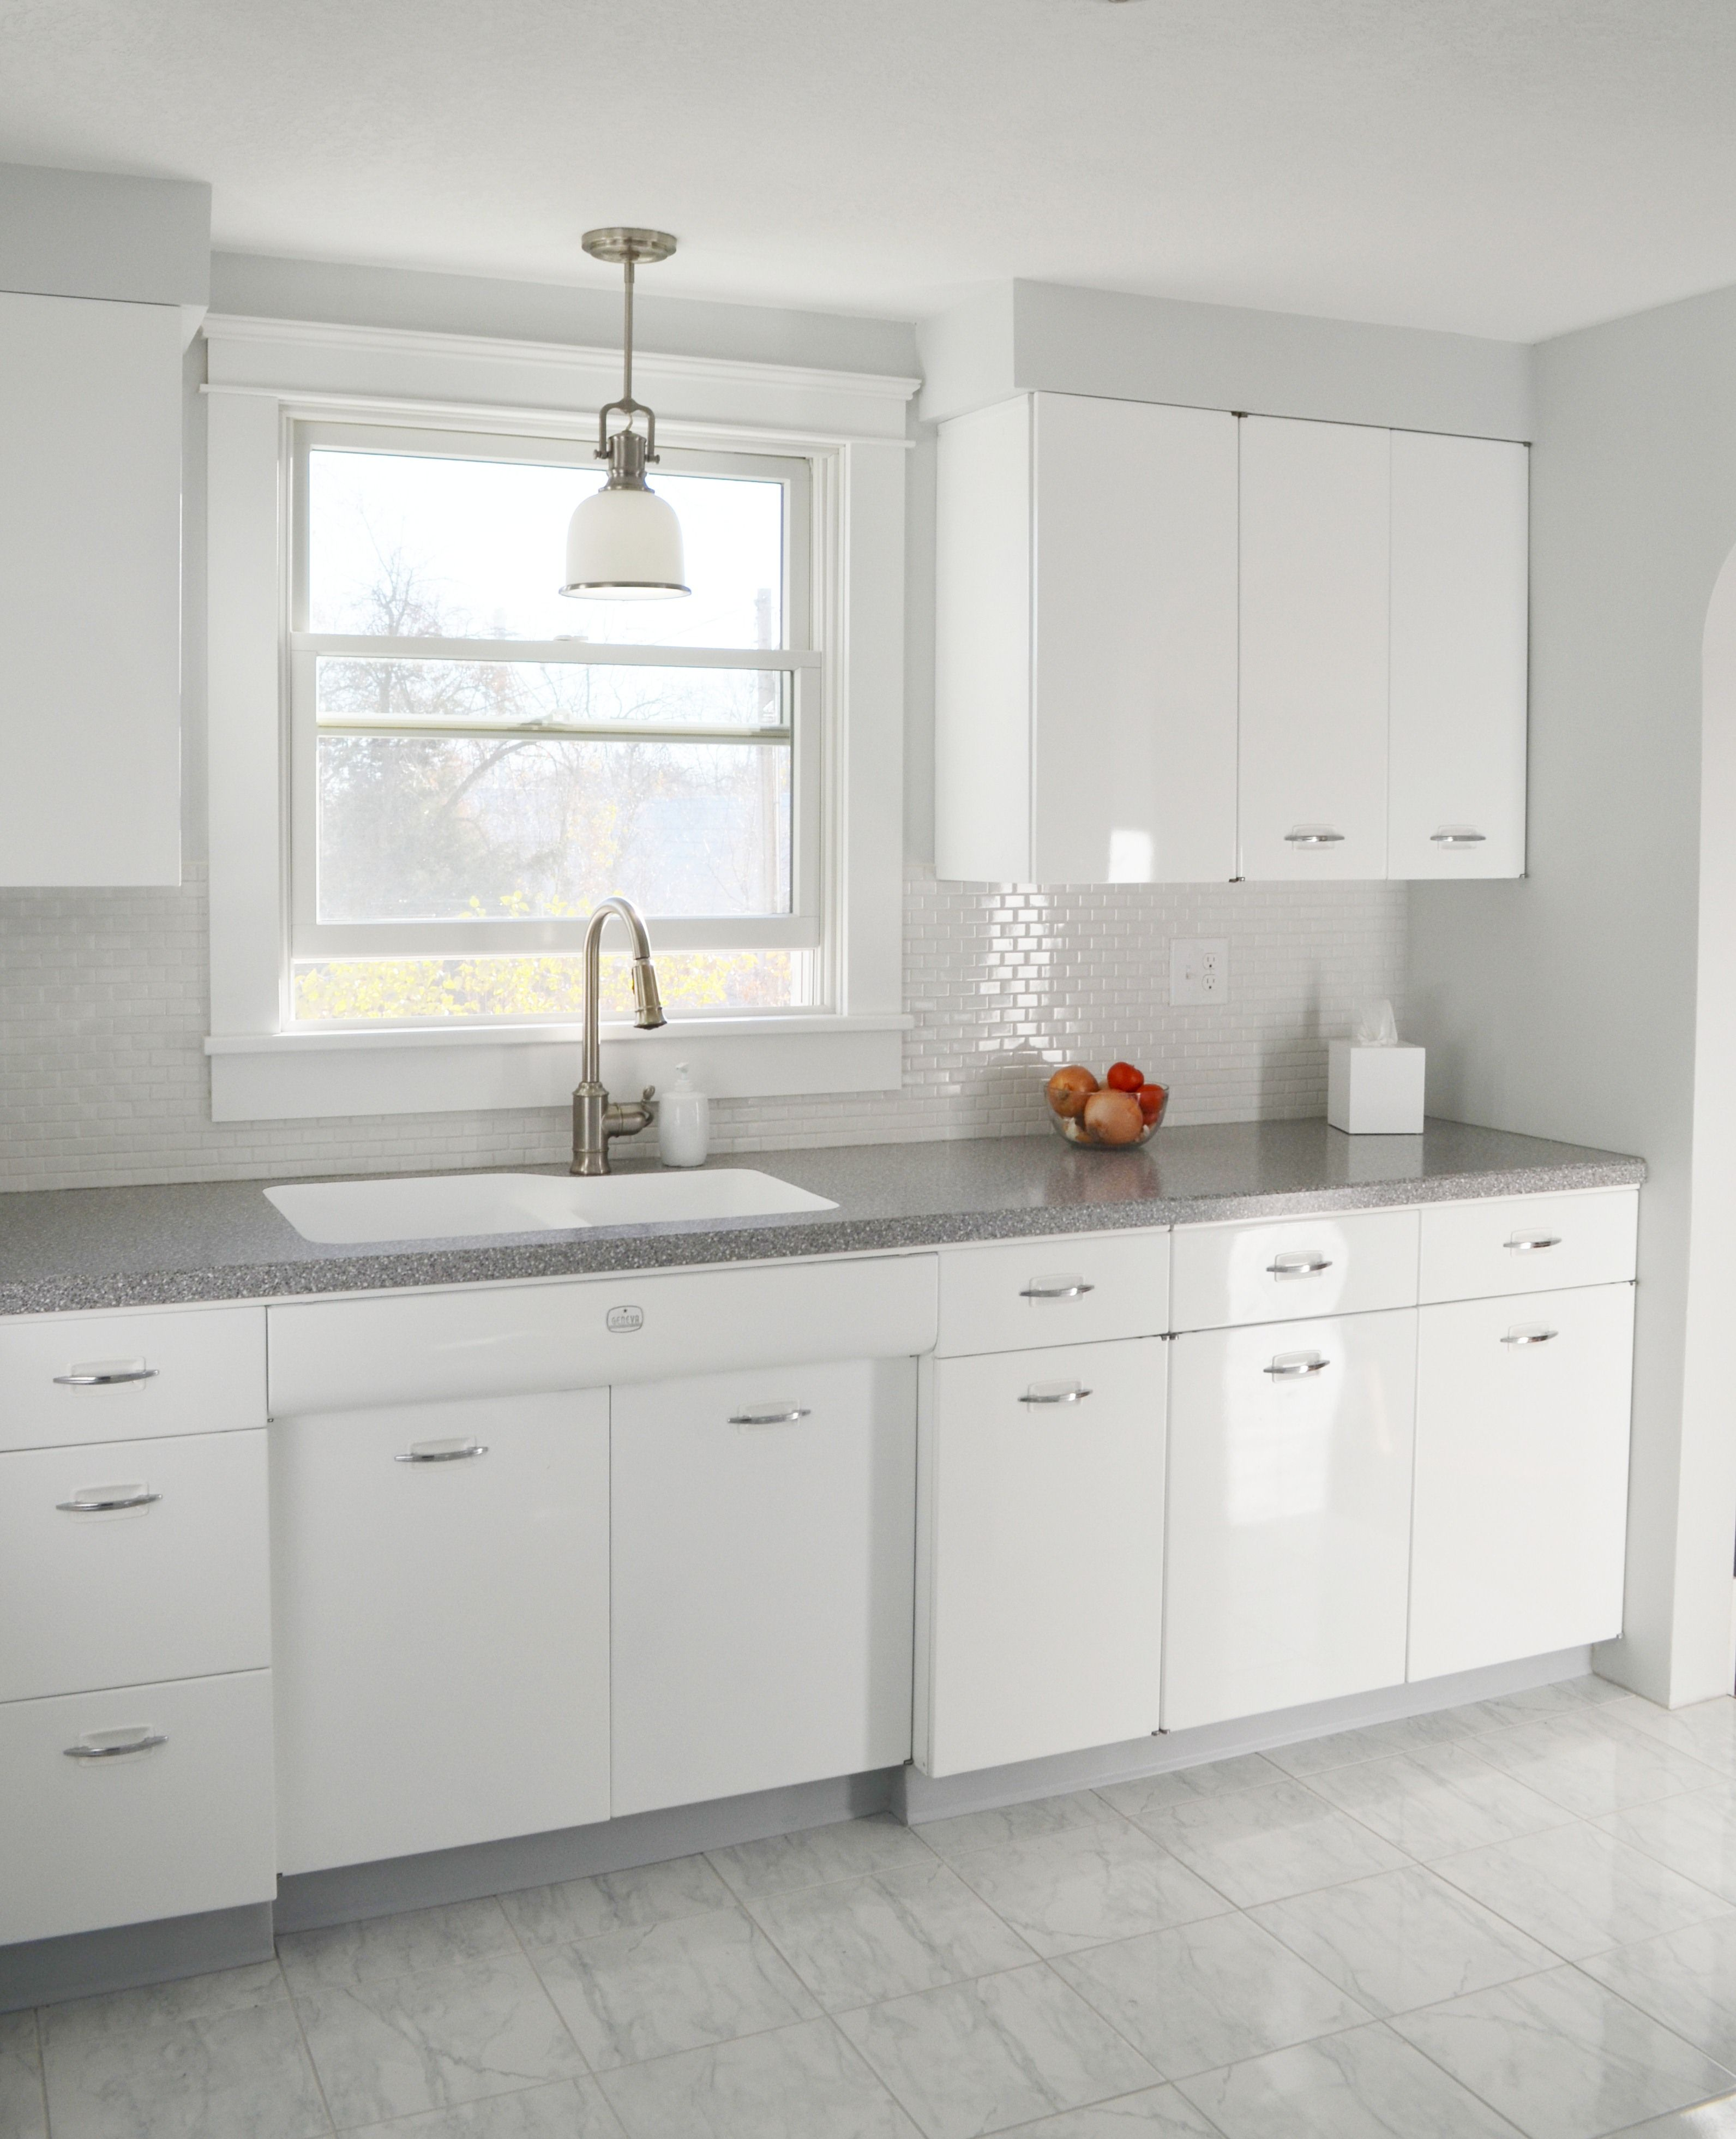 Hackel Construction Inc Remodeled This 1950 S Kitchen By Having